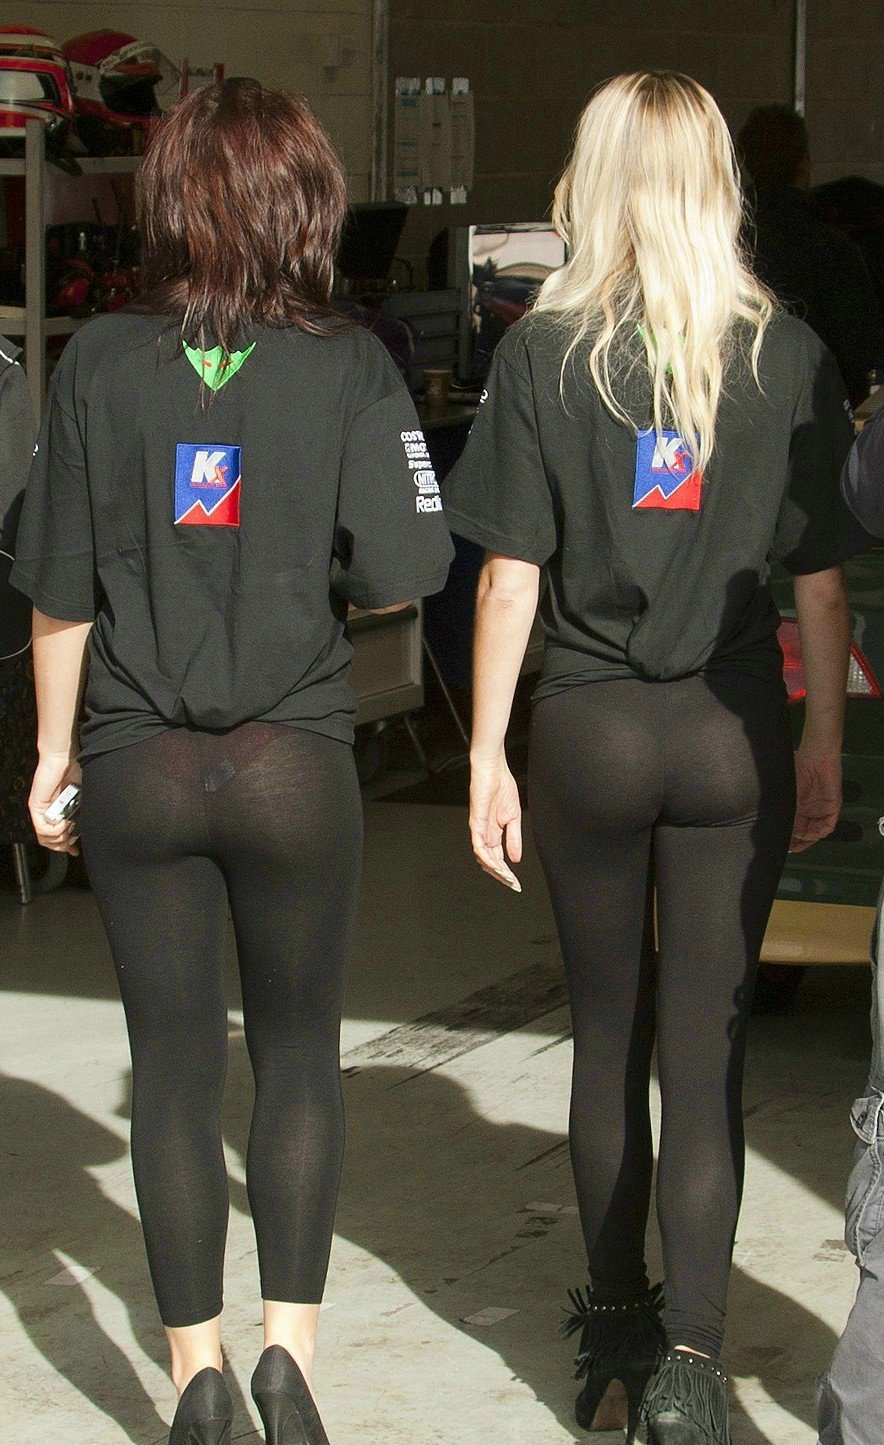 Girls in see through yoga pants having sex